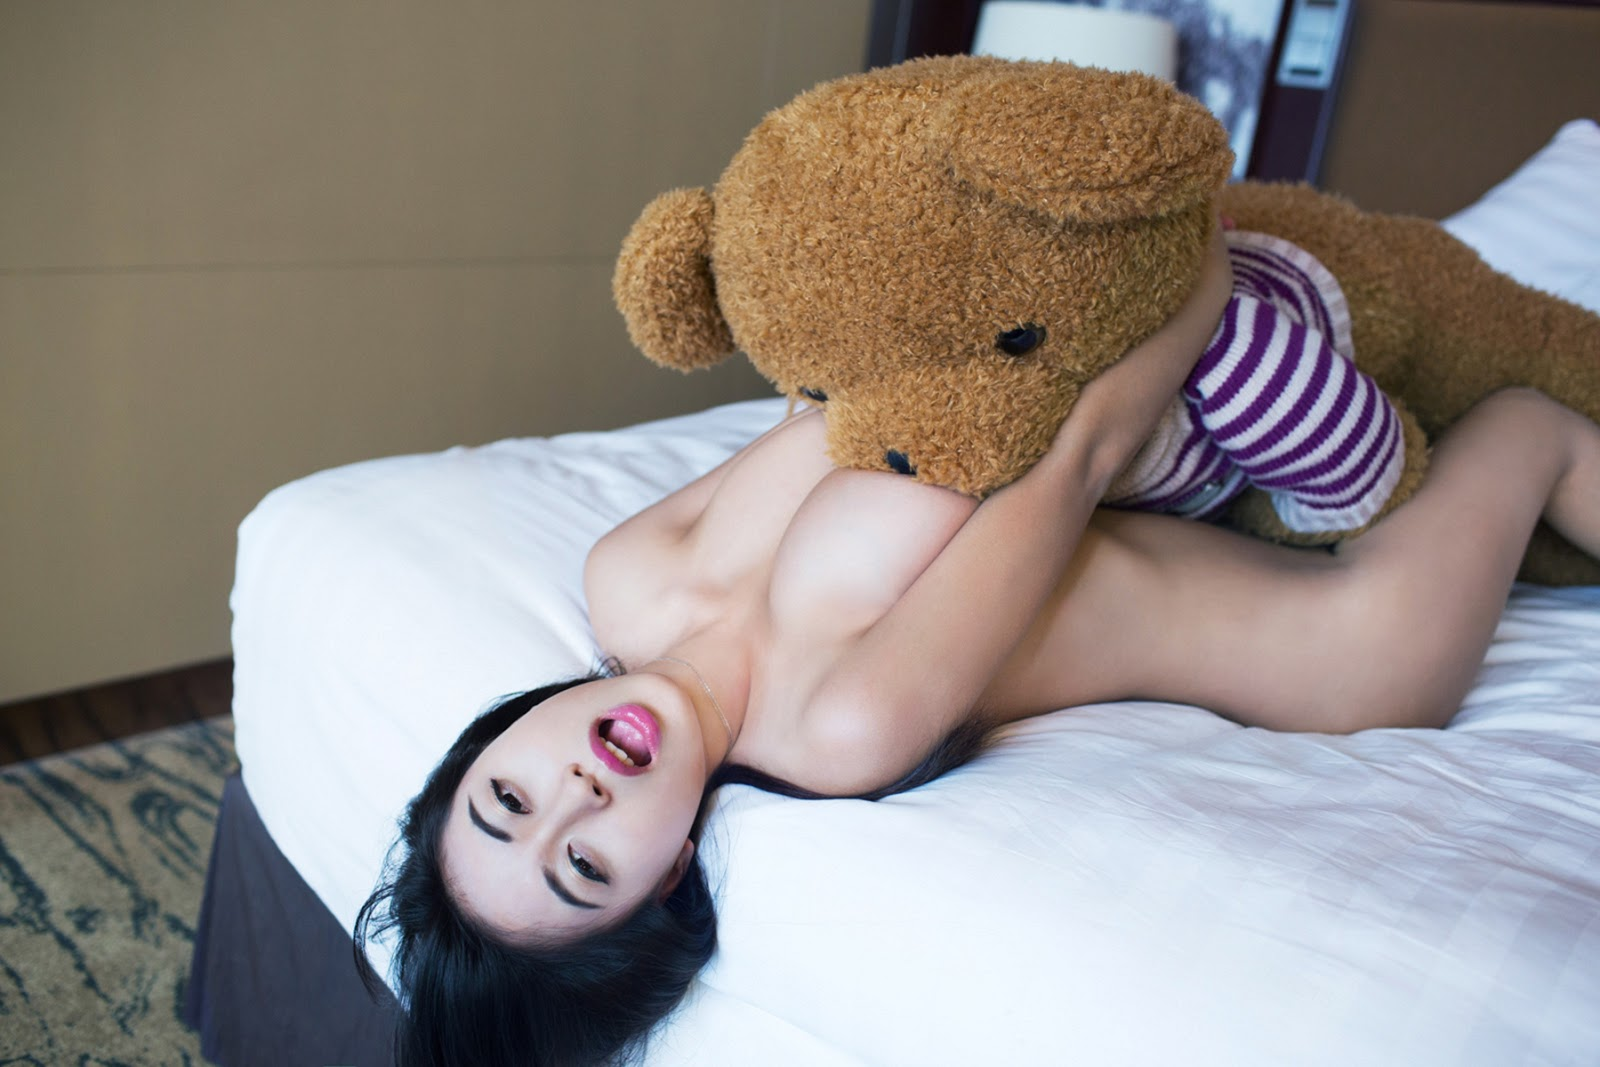 naked-girl-with-teddy